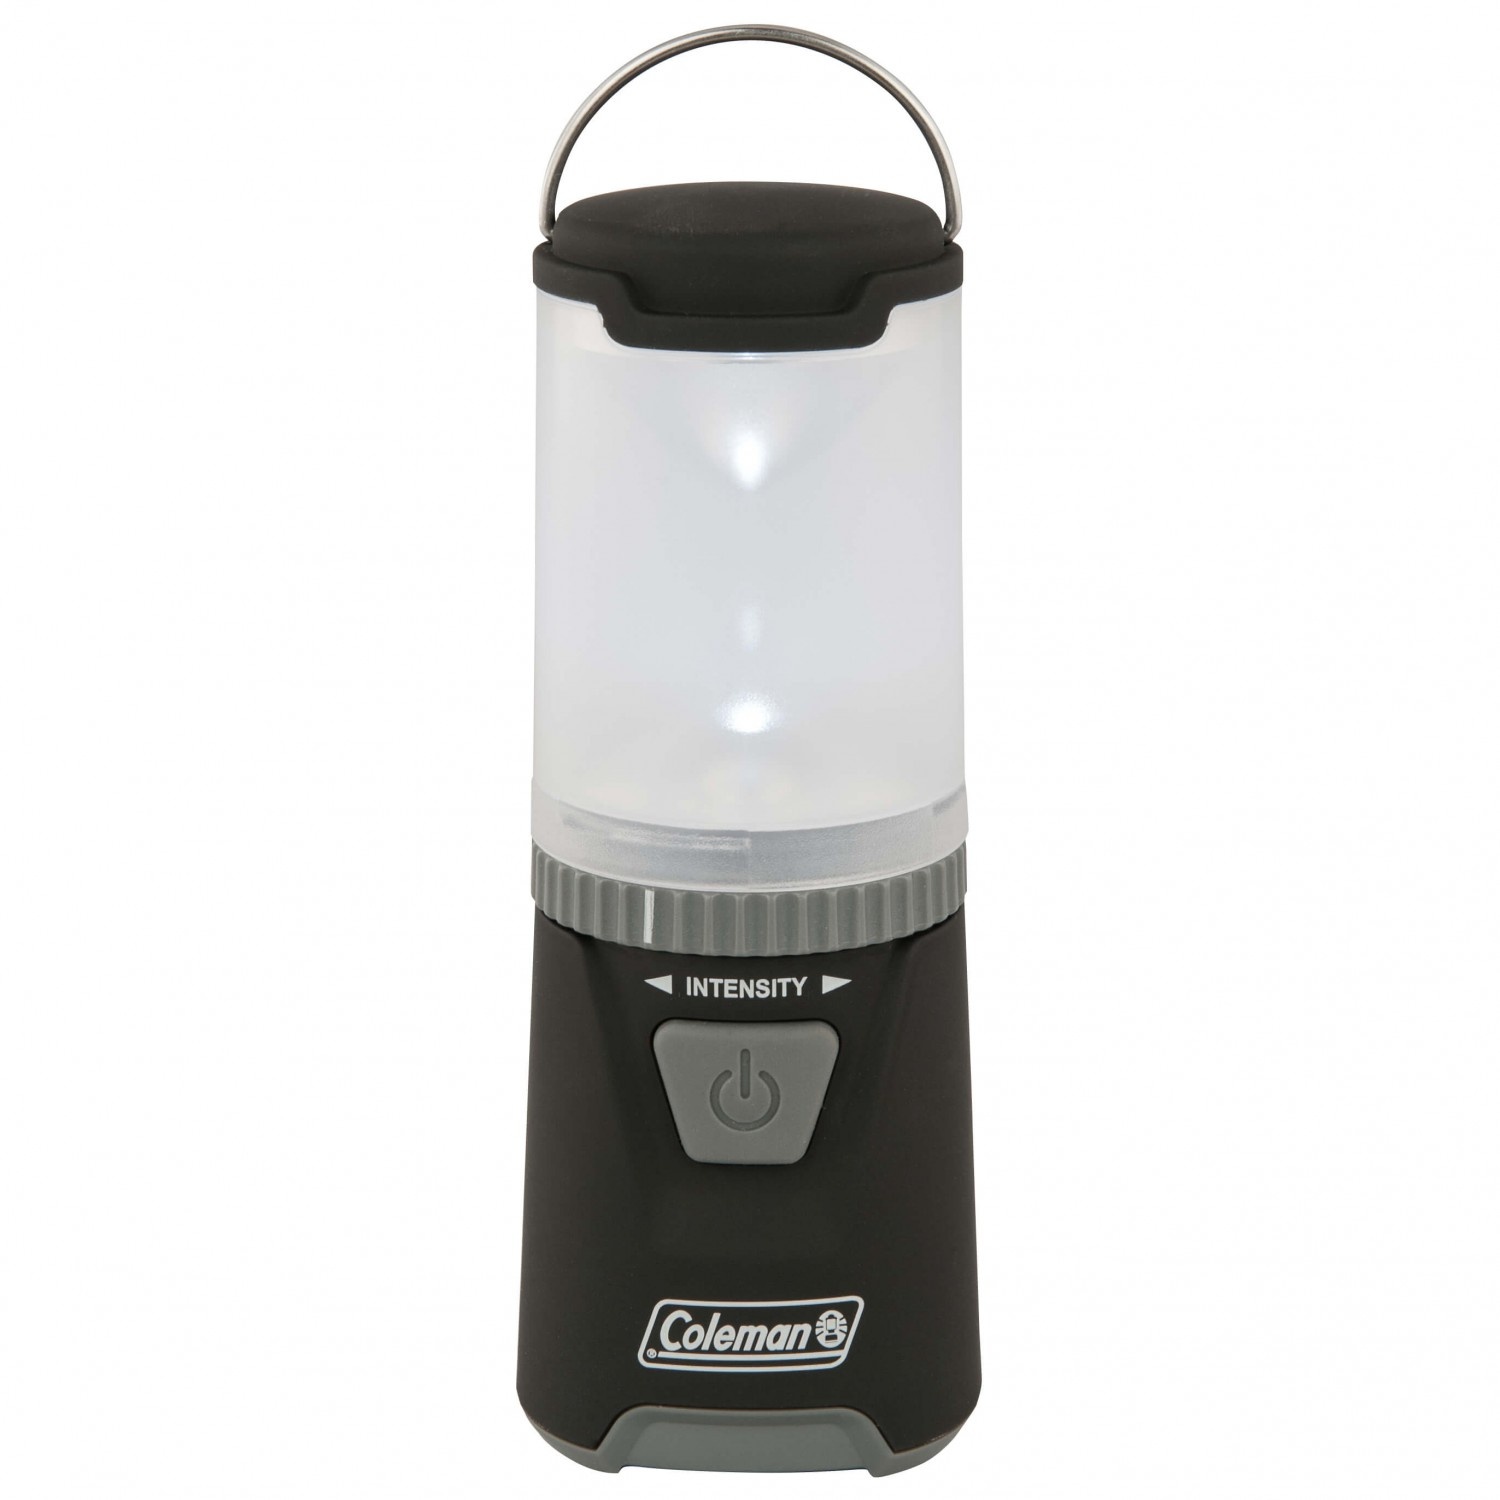 High Tech Lamp Coleman Mini High Tech Led Lantern Led Lamp Buy Online